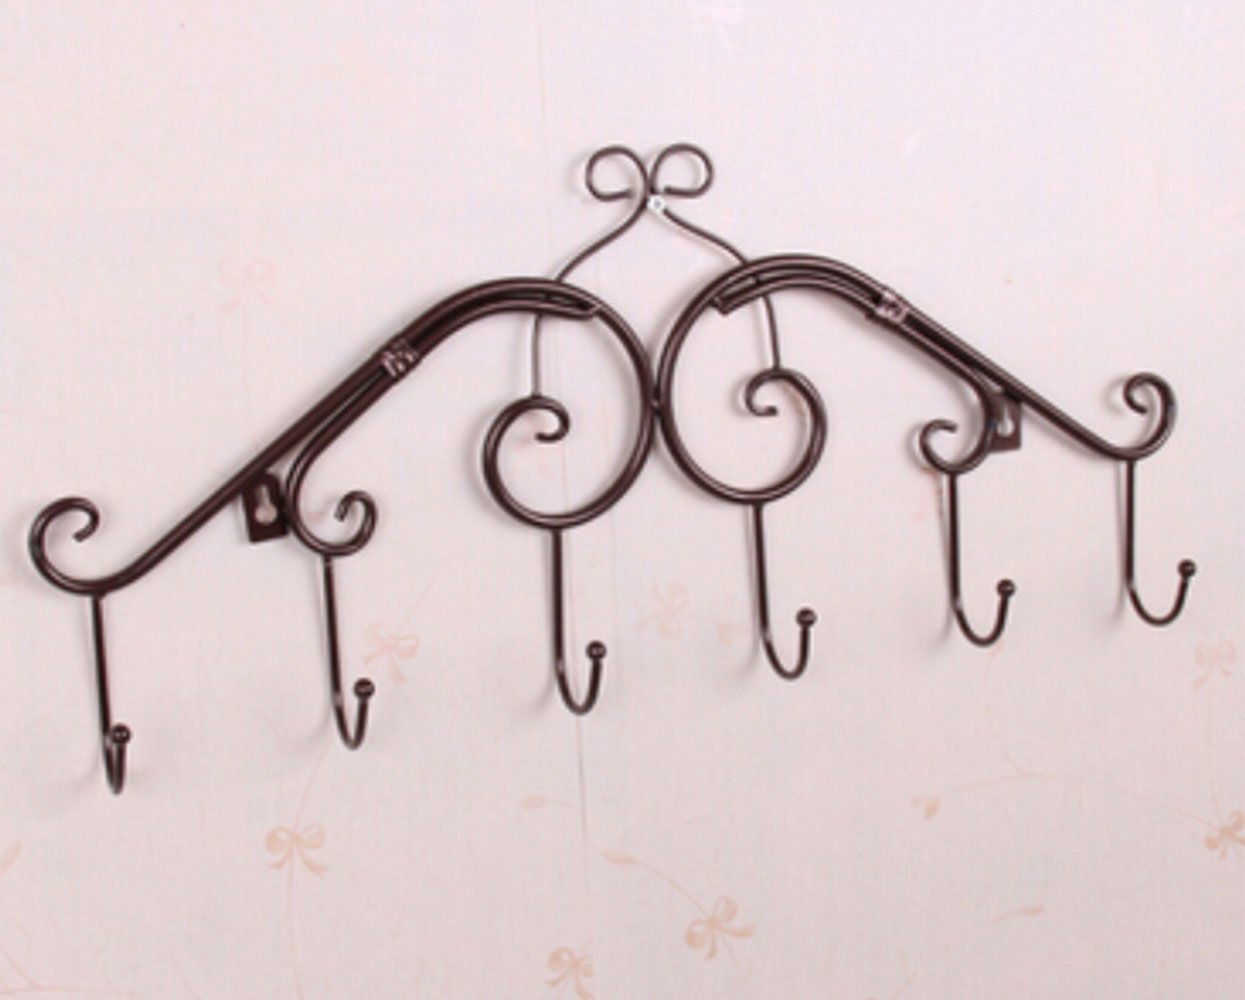 Wall Hanger 6 Hooks Hanging Clothes Rack Hook on the Wall (Bronze)